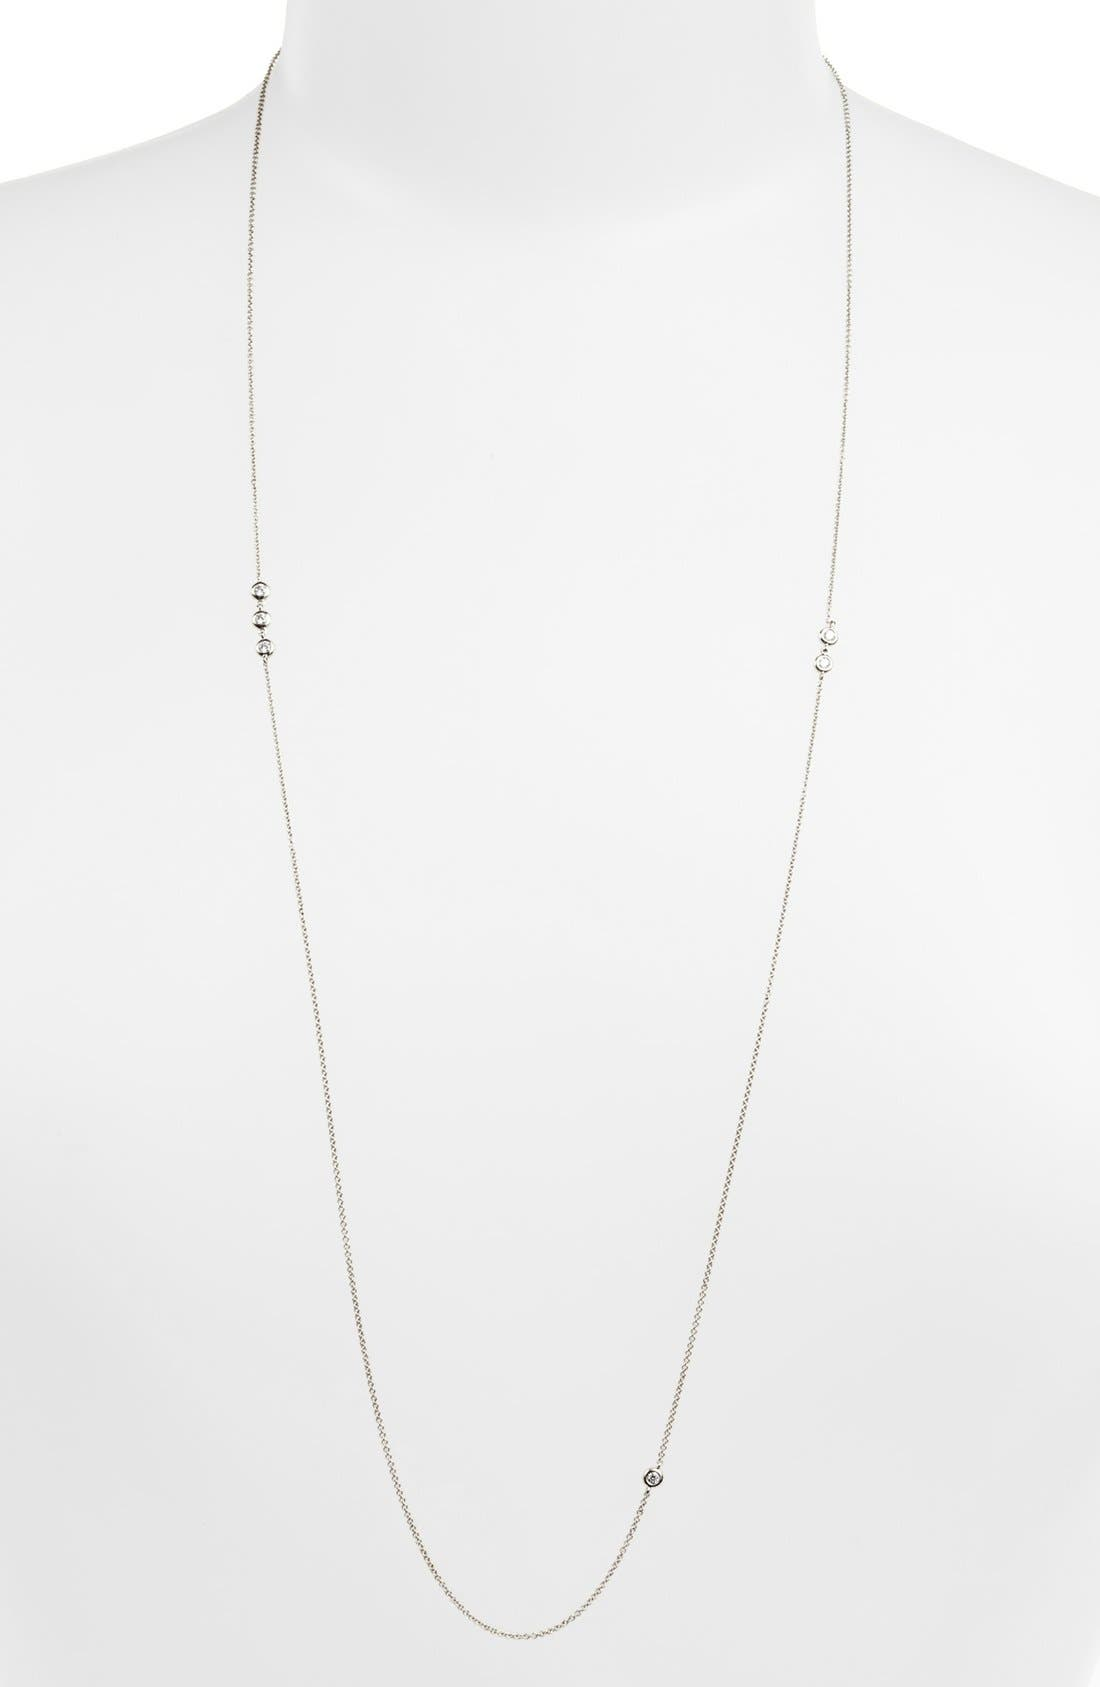 Alternate Image 1 Selected - Bony Levy 'Diamond by the Inch' Long Necklace (Nordstrom Exclusive)